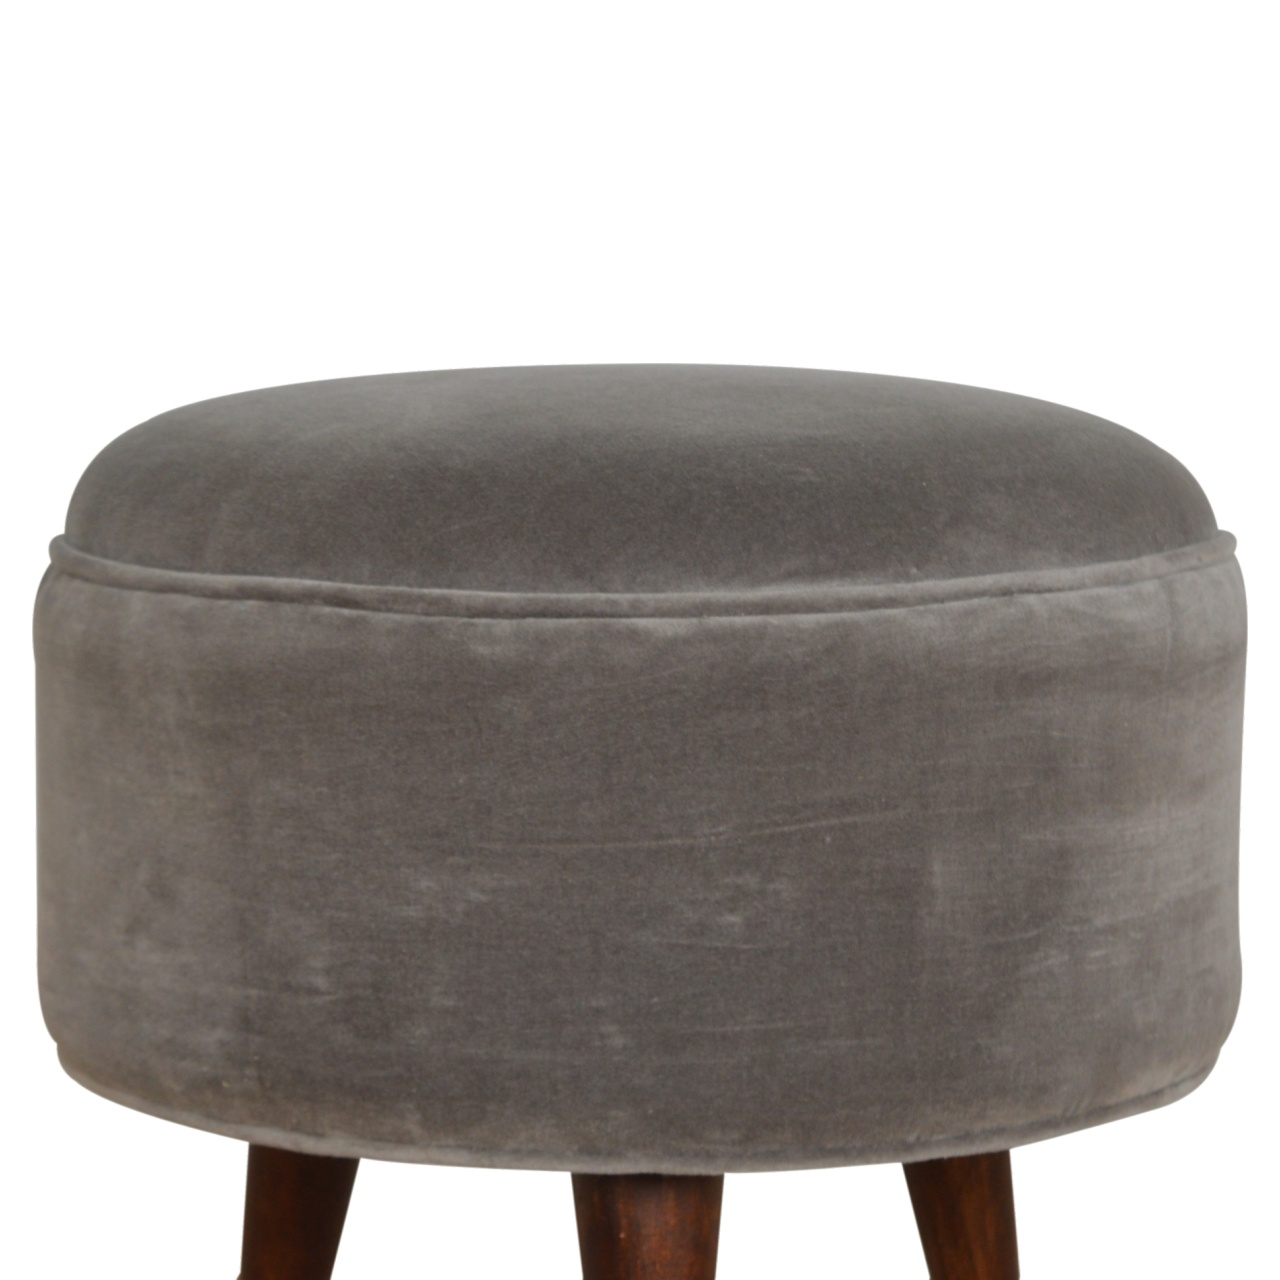 The Home Furnishings Company Grey Velvet Nordic Foot Rest Stool